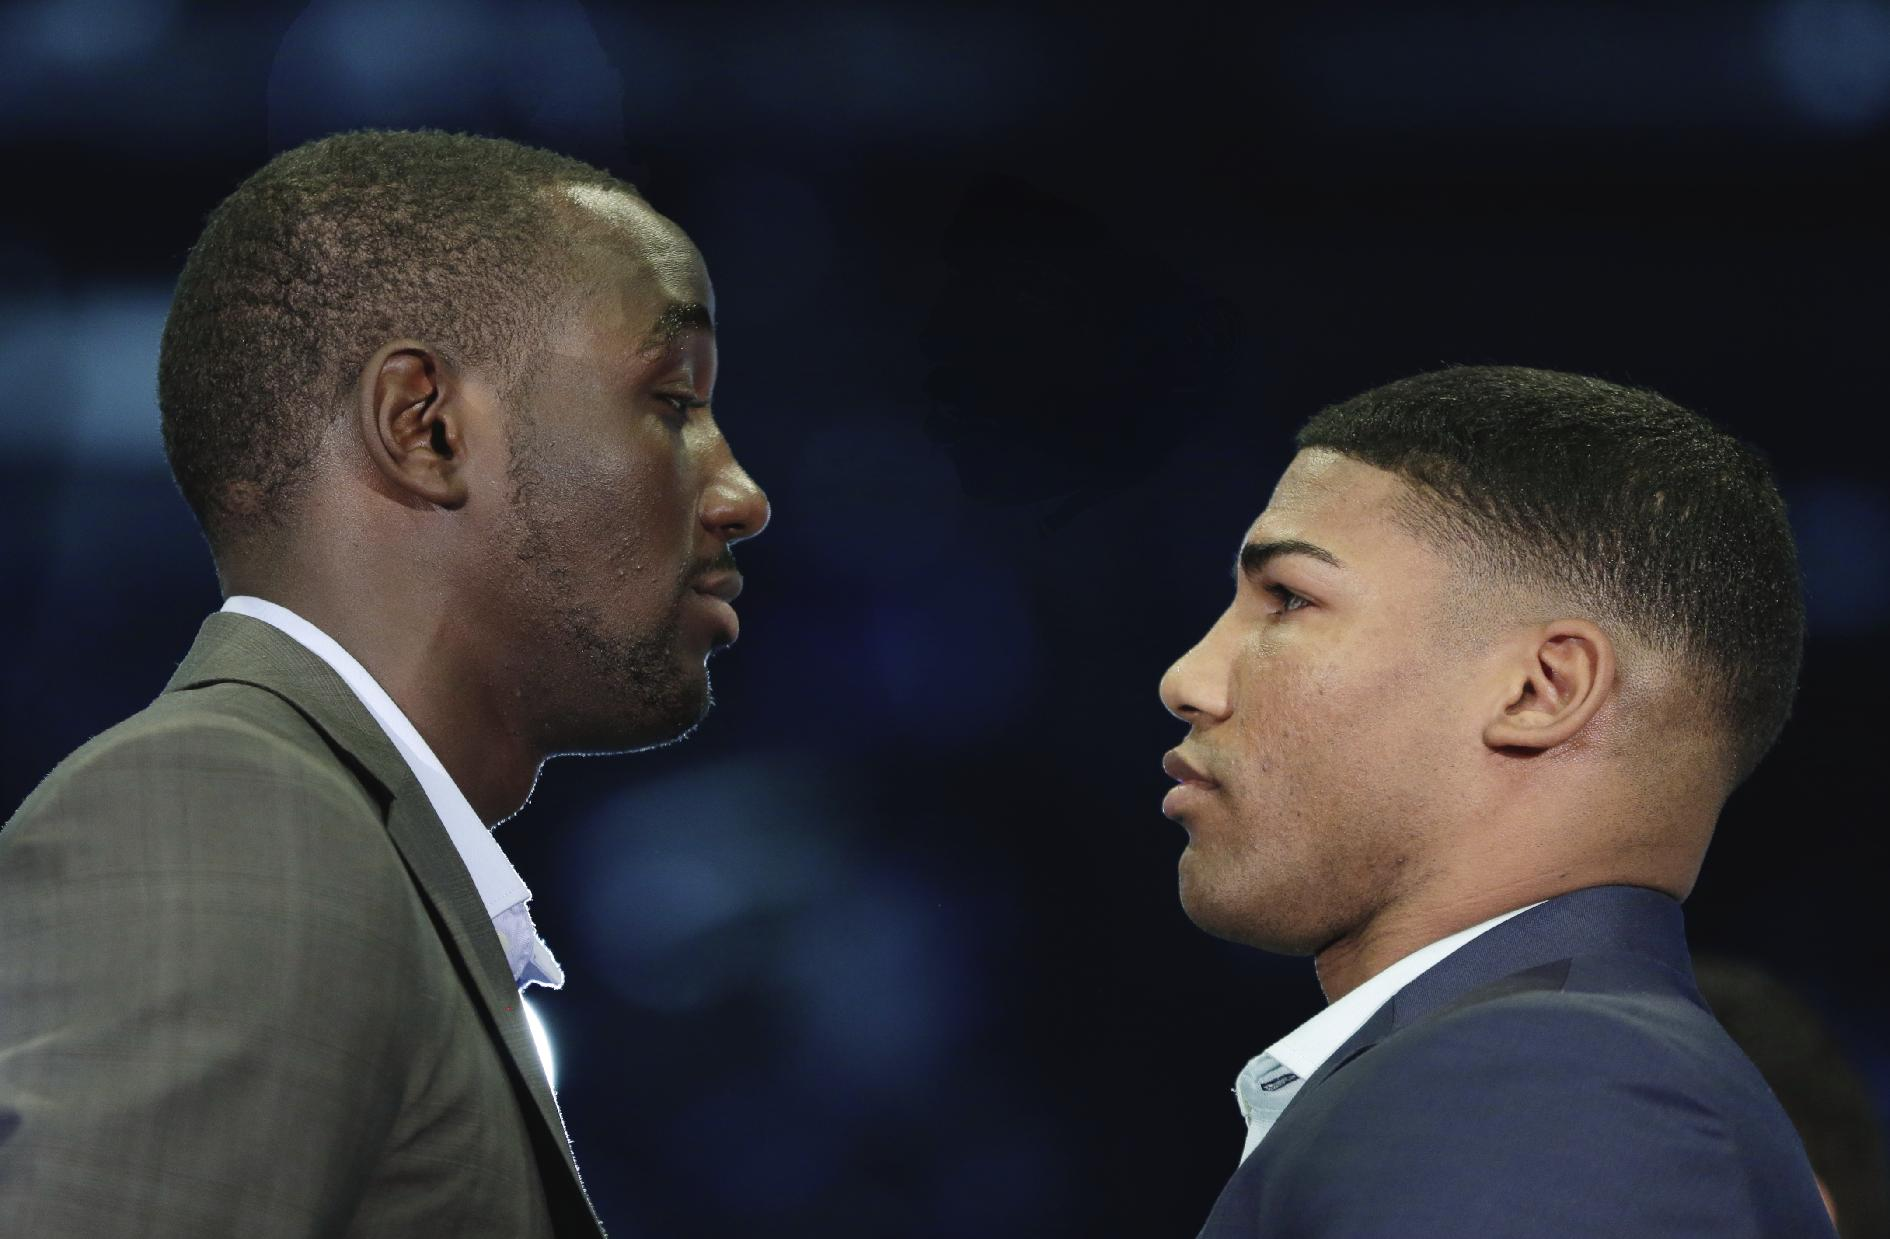 Terence Crawford, left, and Yuriorkis Gamboa pose for a photo at a news conference in Omaha, Neb., Thursday, May 8, 2014,  to announce their world lightweight championship fight in June. Crawford will defend his WBO title in his hometown, in the first world championship fight in Omaha since Joe Frazier stopped Ron Stander in 1972